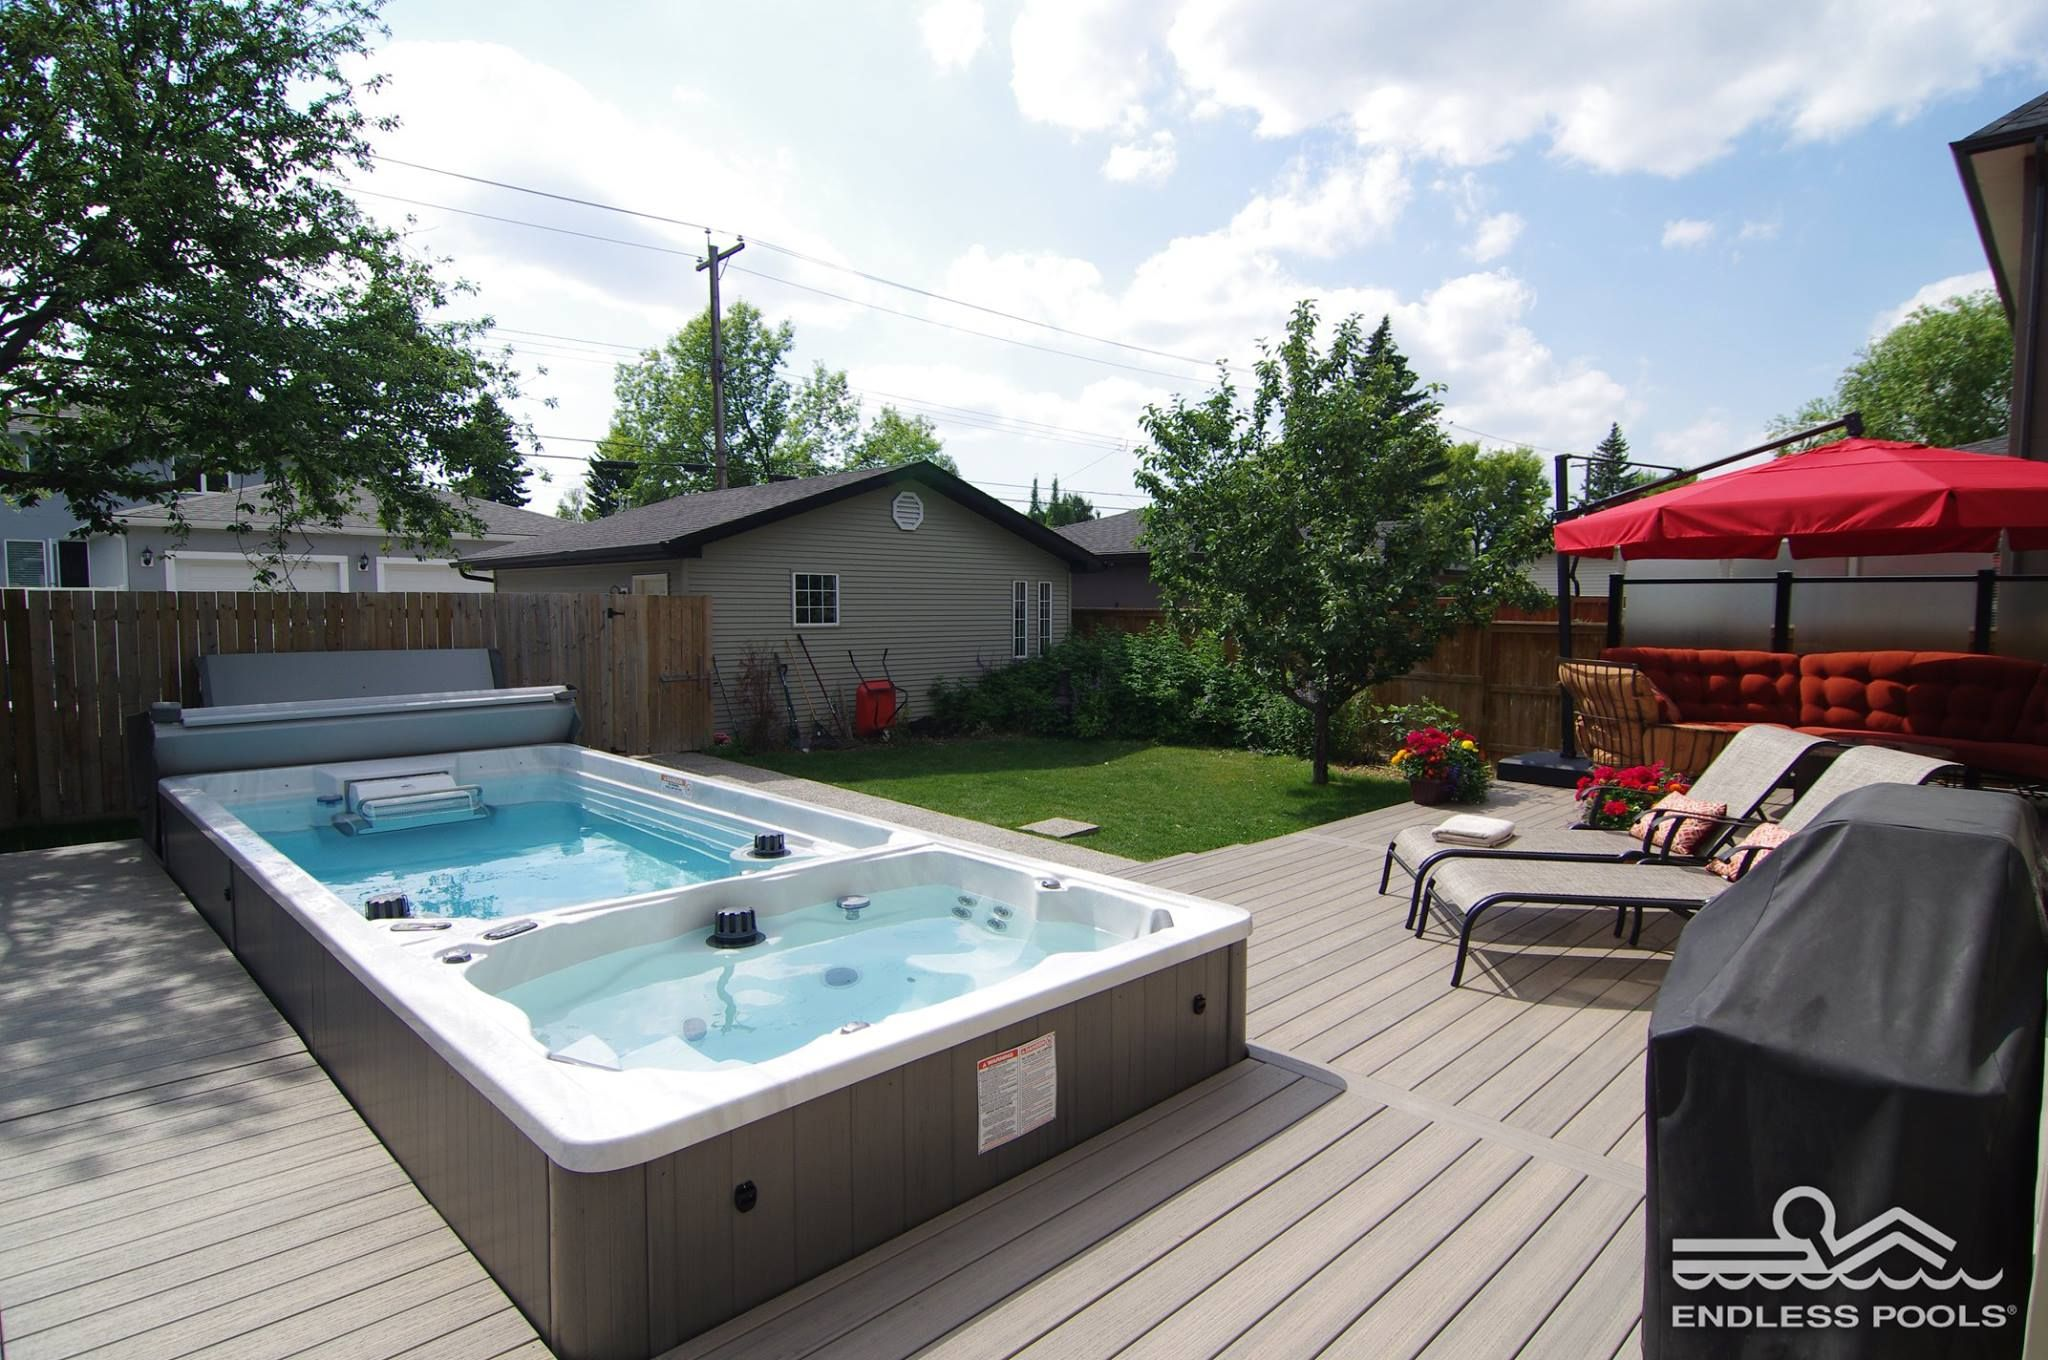 Have some fun with this SWIMSPA! Pool, hot tub, home gym, all in one!  Bringing the backyard experience to a whole new level! Home Gyms -  http://amz